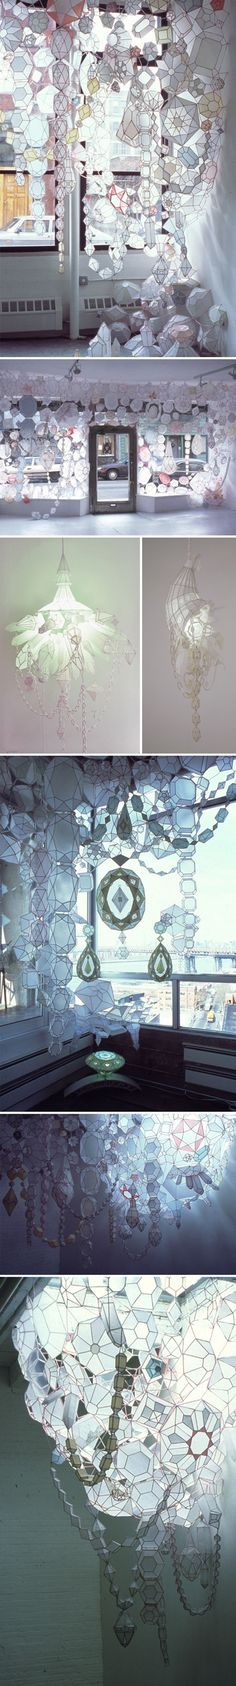 paper/mixed media installation artist Kirsten Hassenfeld